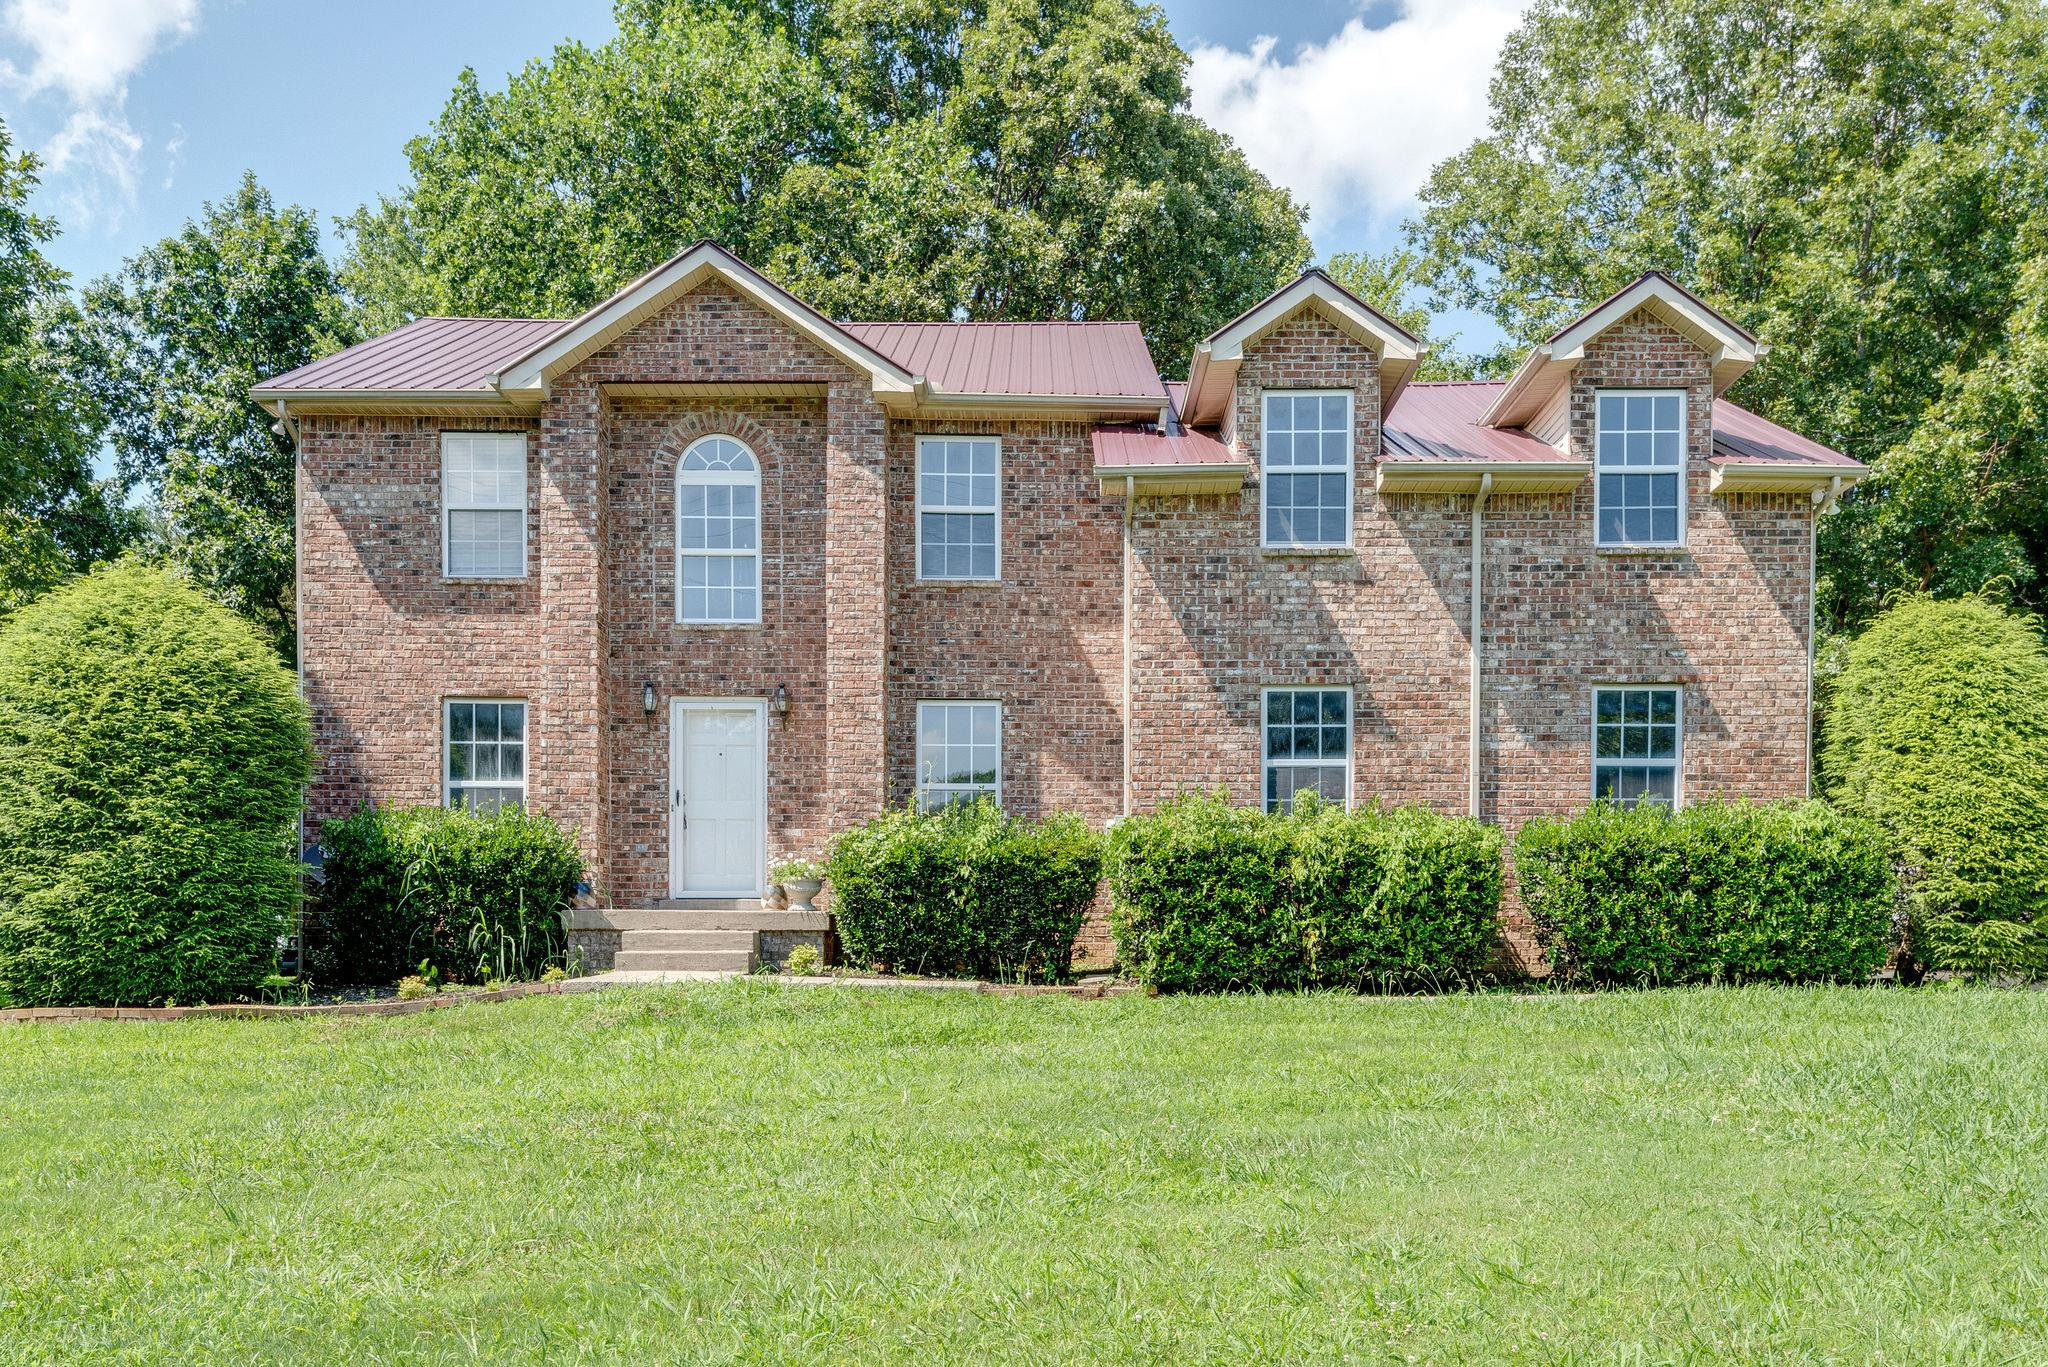 One of Fairview 4 Bedroom Homes for Sale at 7522 Aubrey Ridge Dr